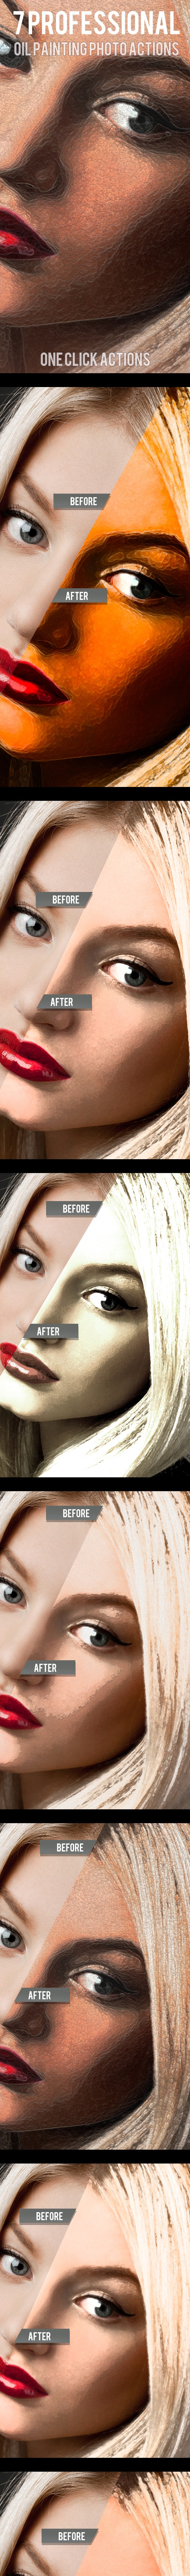 7 Oil Paint Photo Actions - Photo Effects Actions